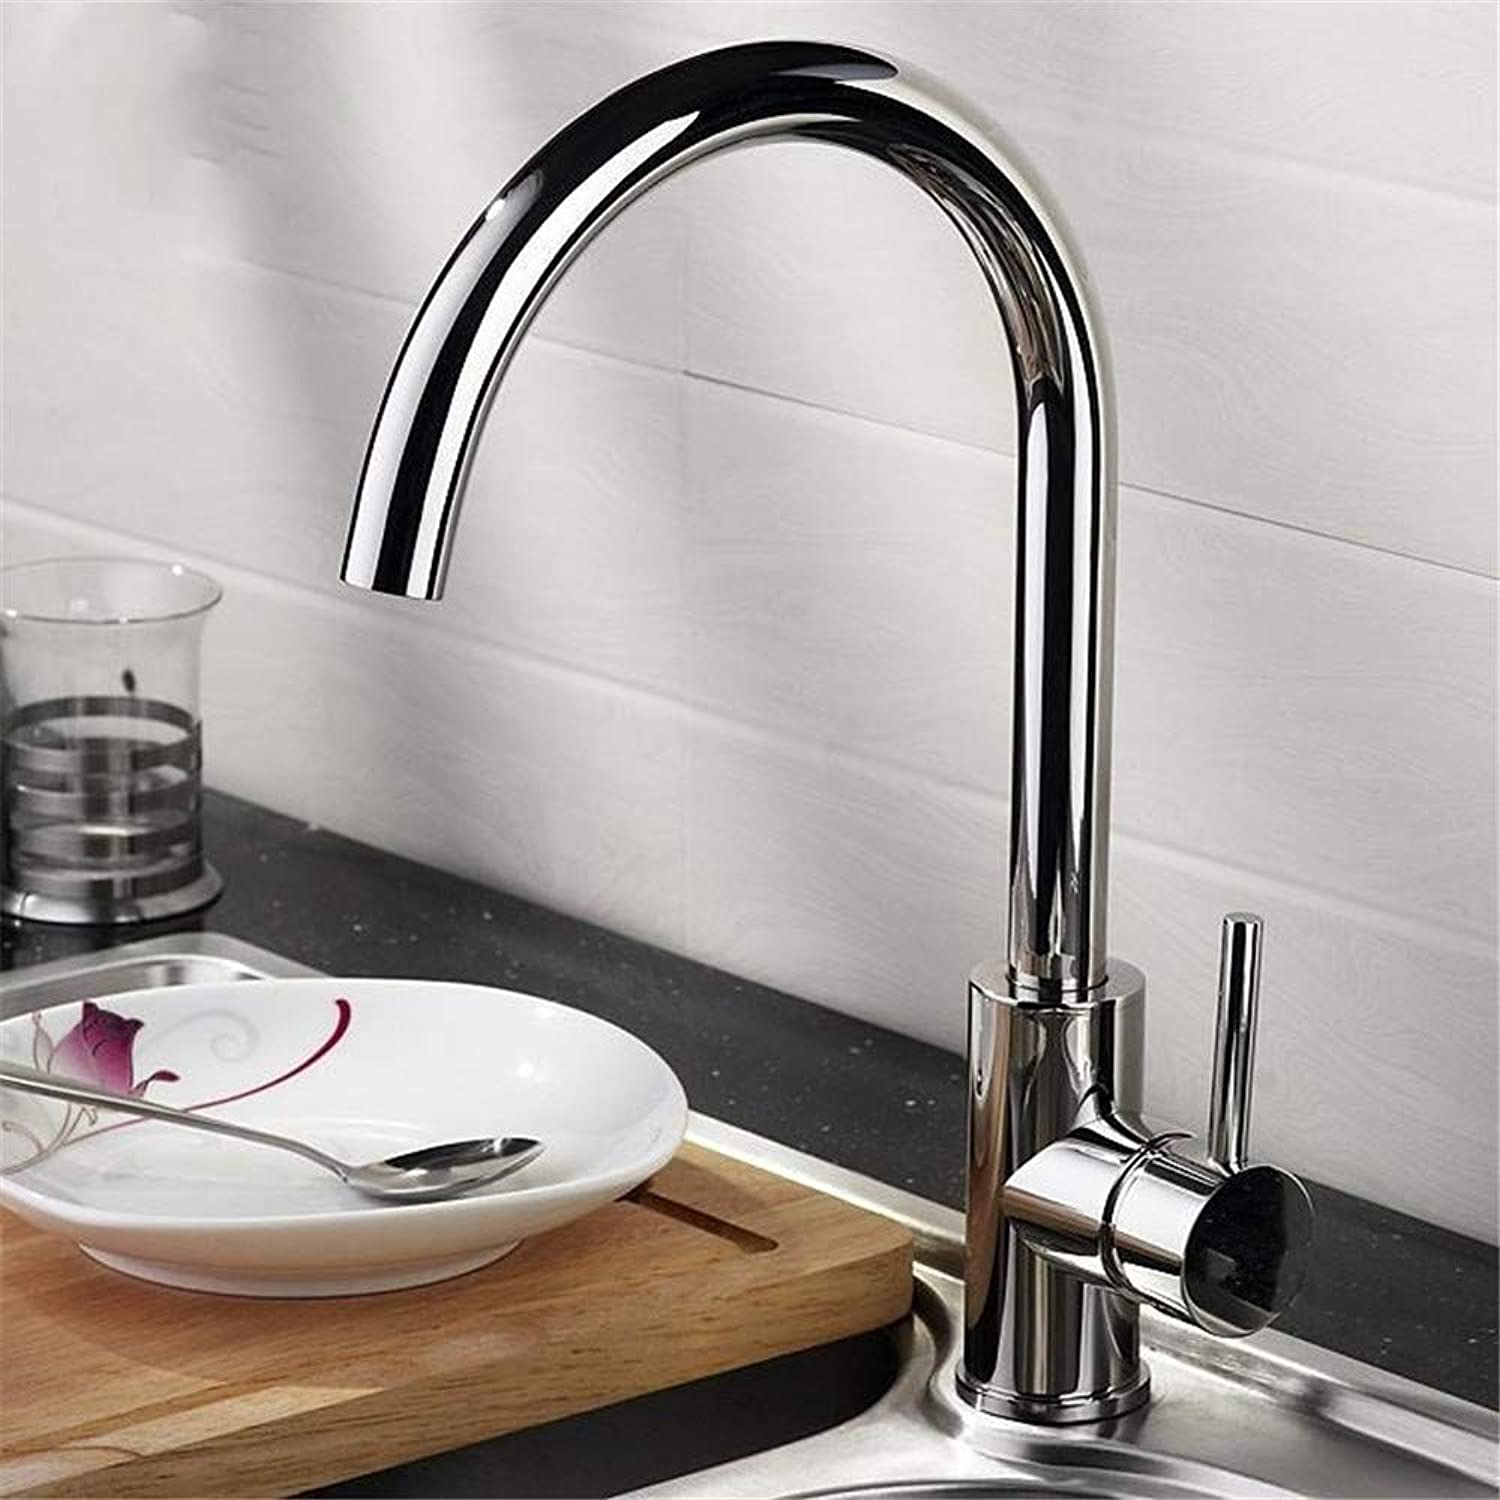 Oudan Kitchen Mixer redatable Vegetables Basin Mixing Faucet All Copper Single (color   -, Size   -)